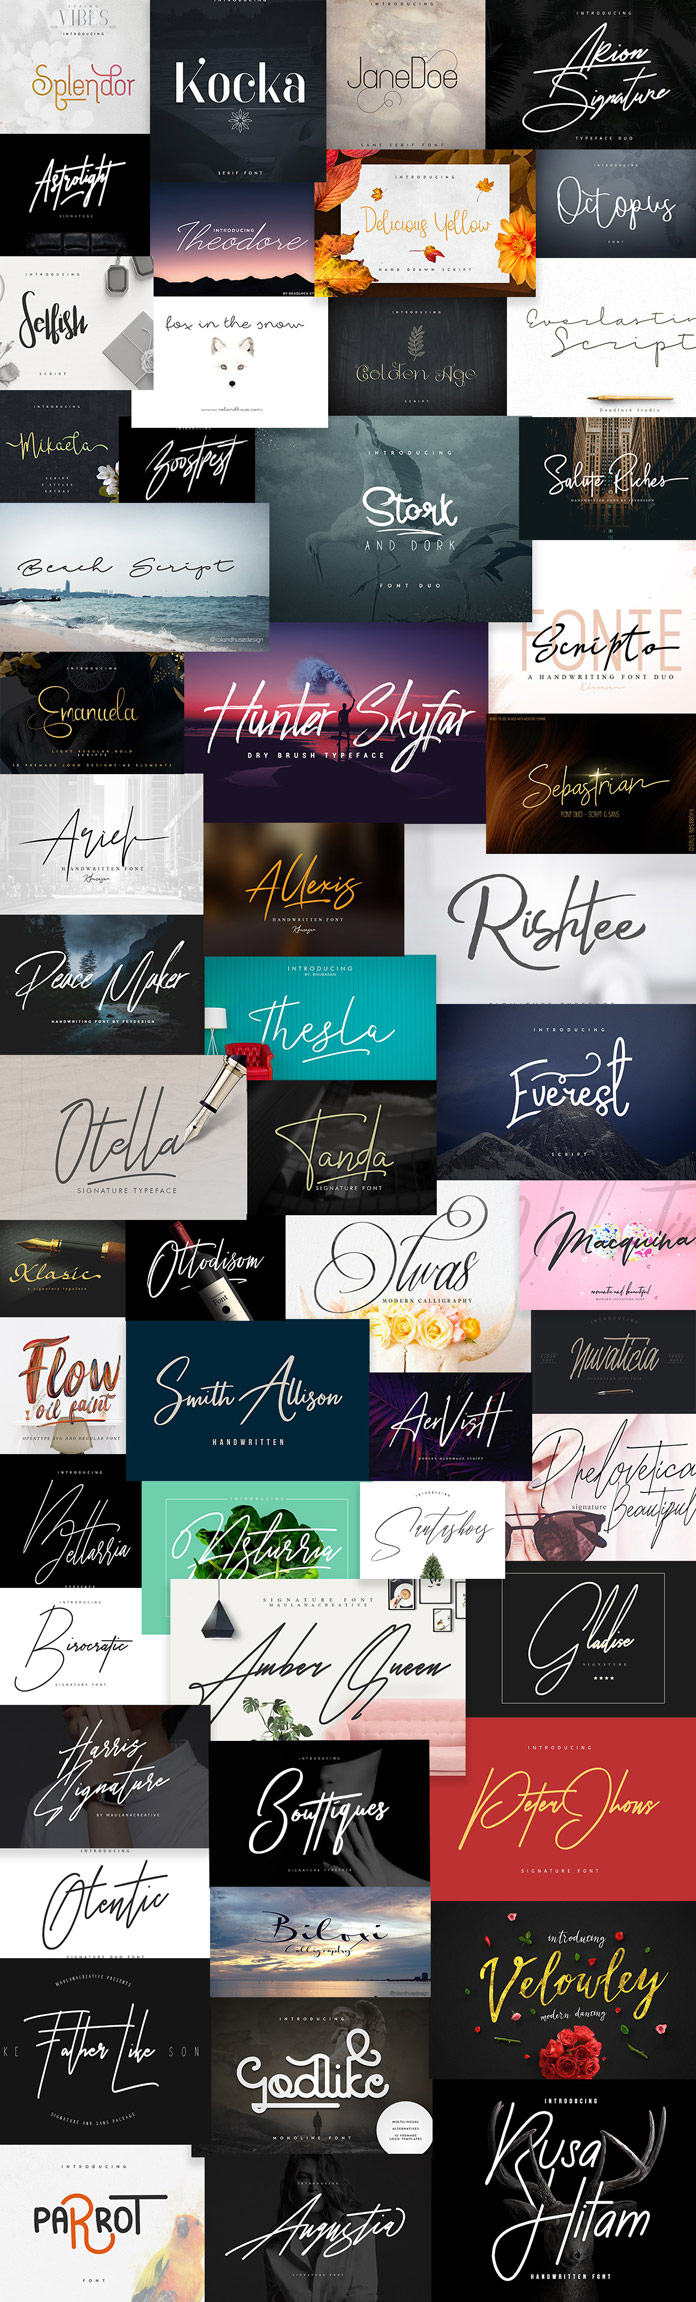 Signature fonts bundle 55 font families with extended license.